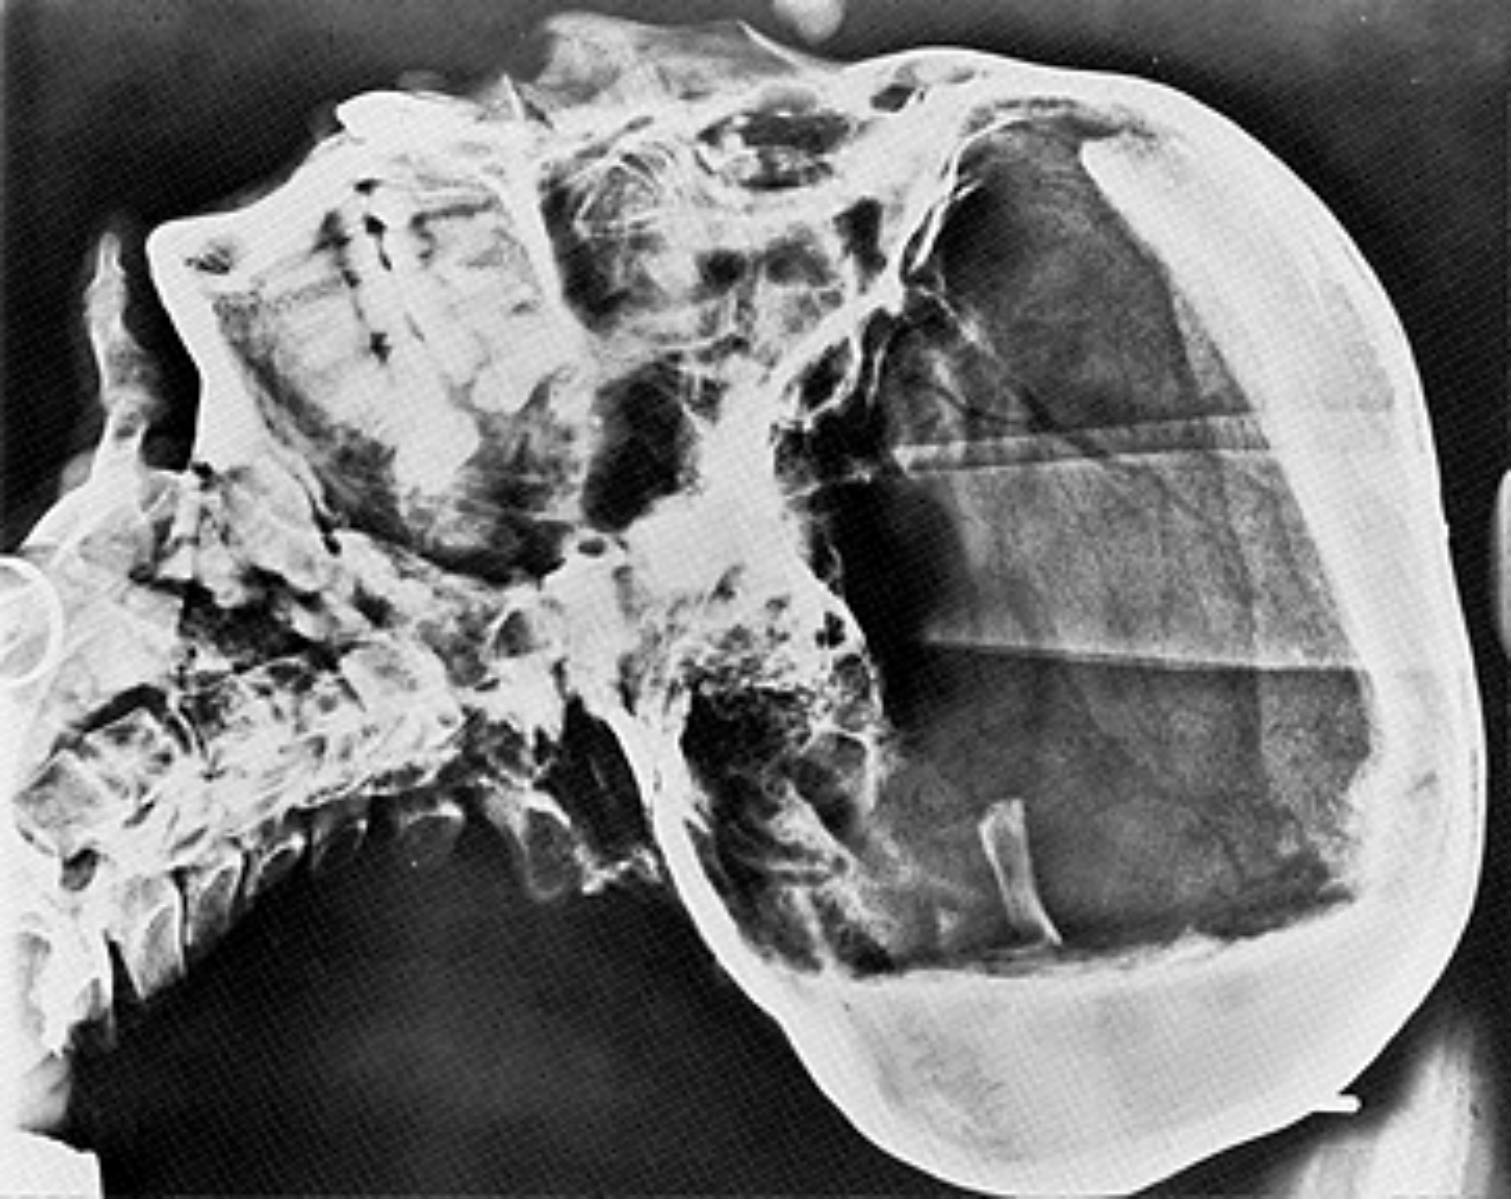 the death of tutankhamun accident disease or murder ancient x ray showing the courses of hardened resin as a white opaque mass at